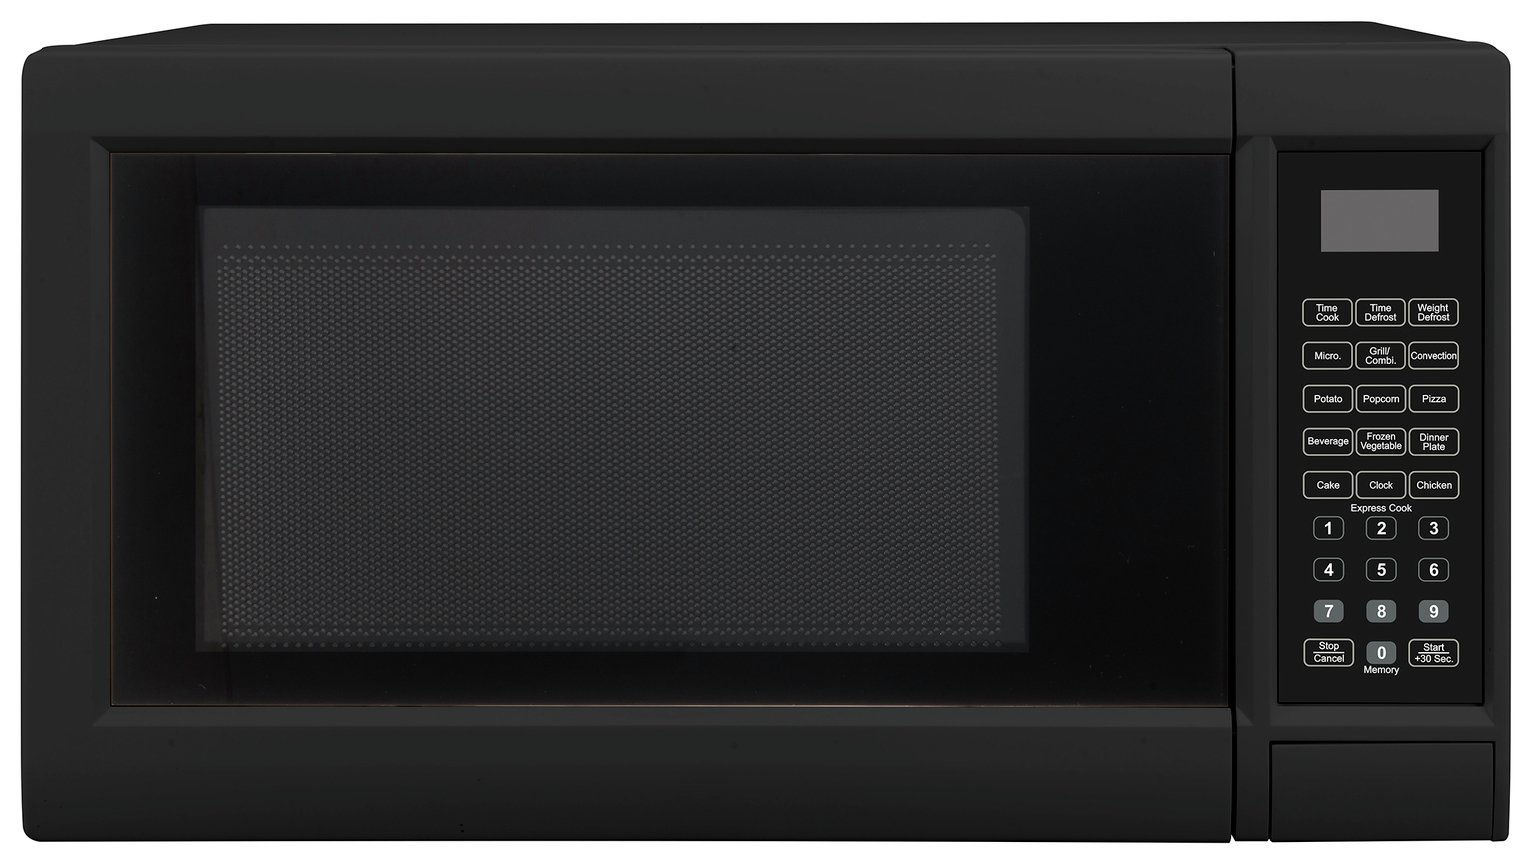 Morphy Richards 800W Combination Microwave D90D - Black